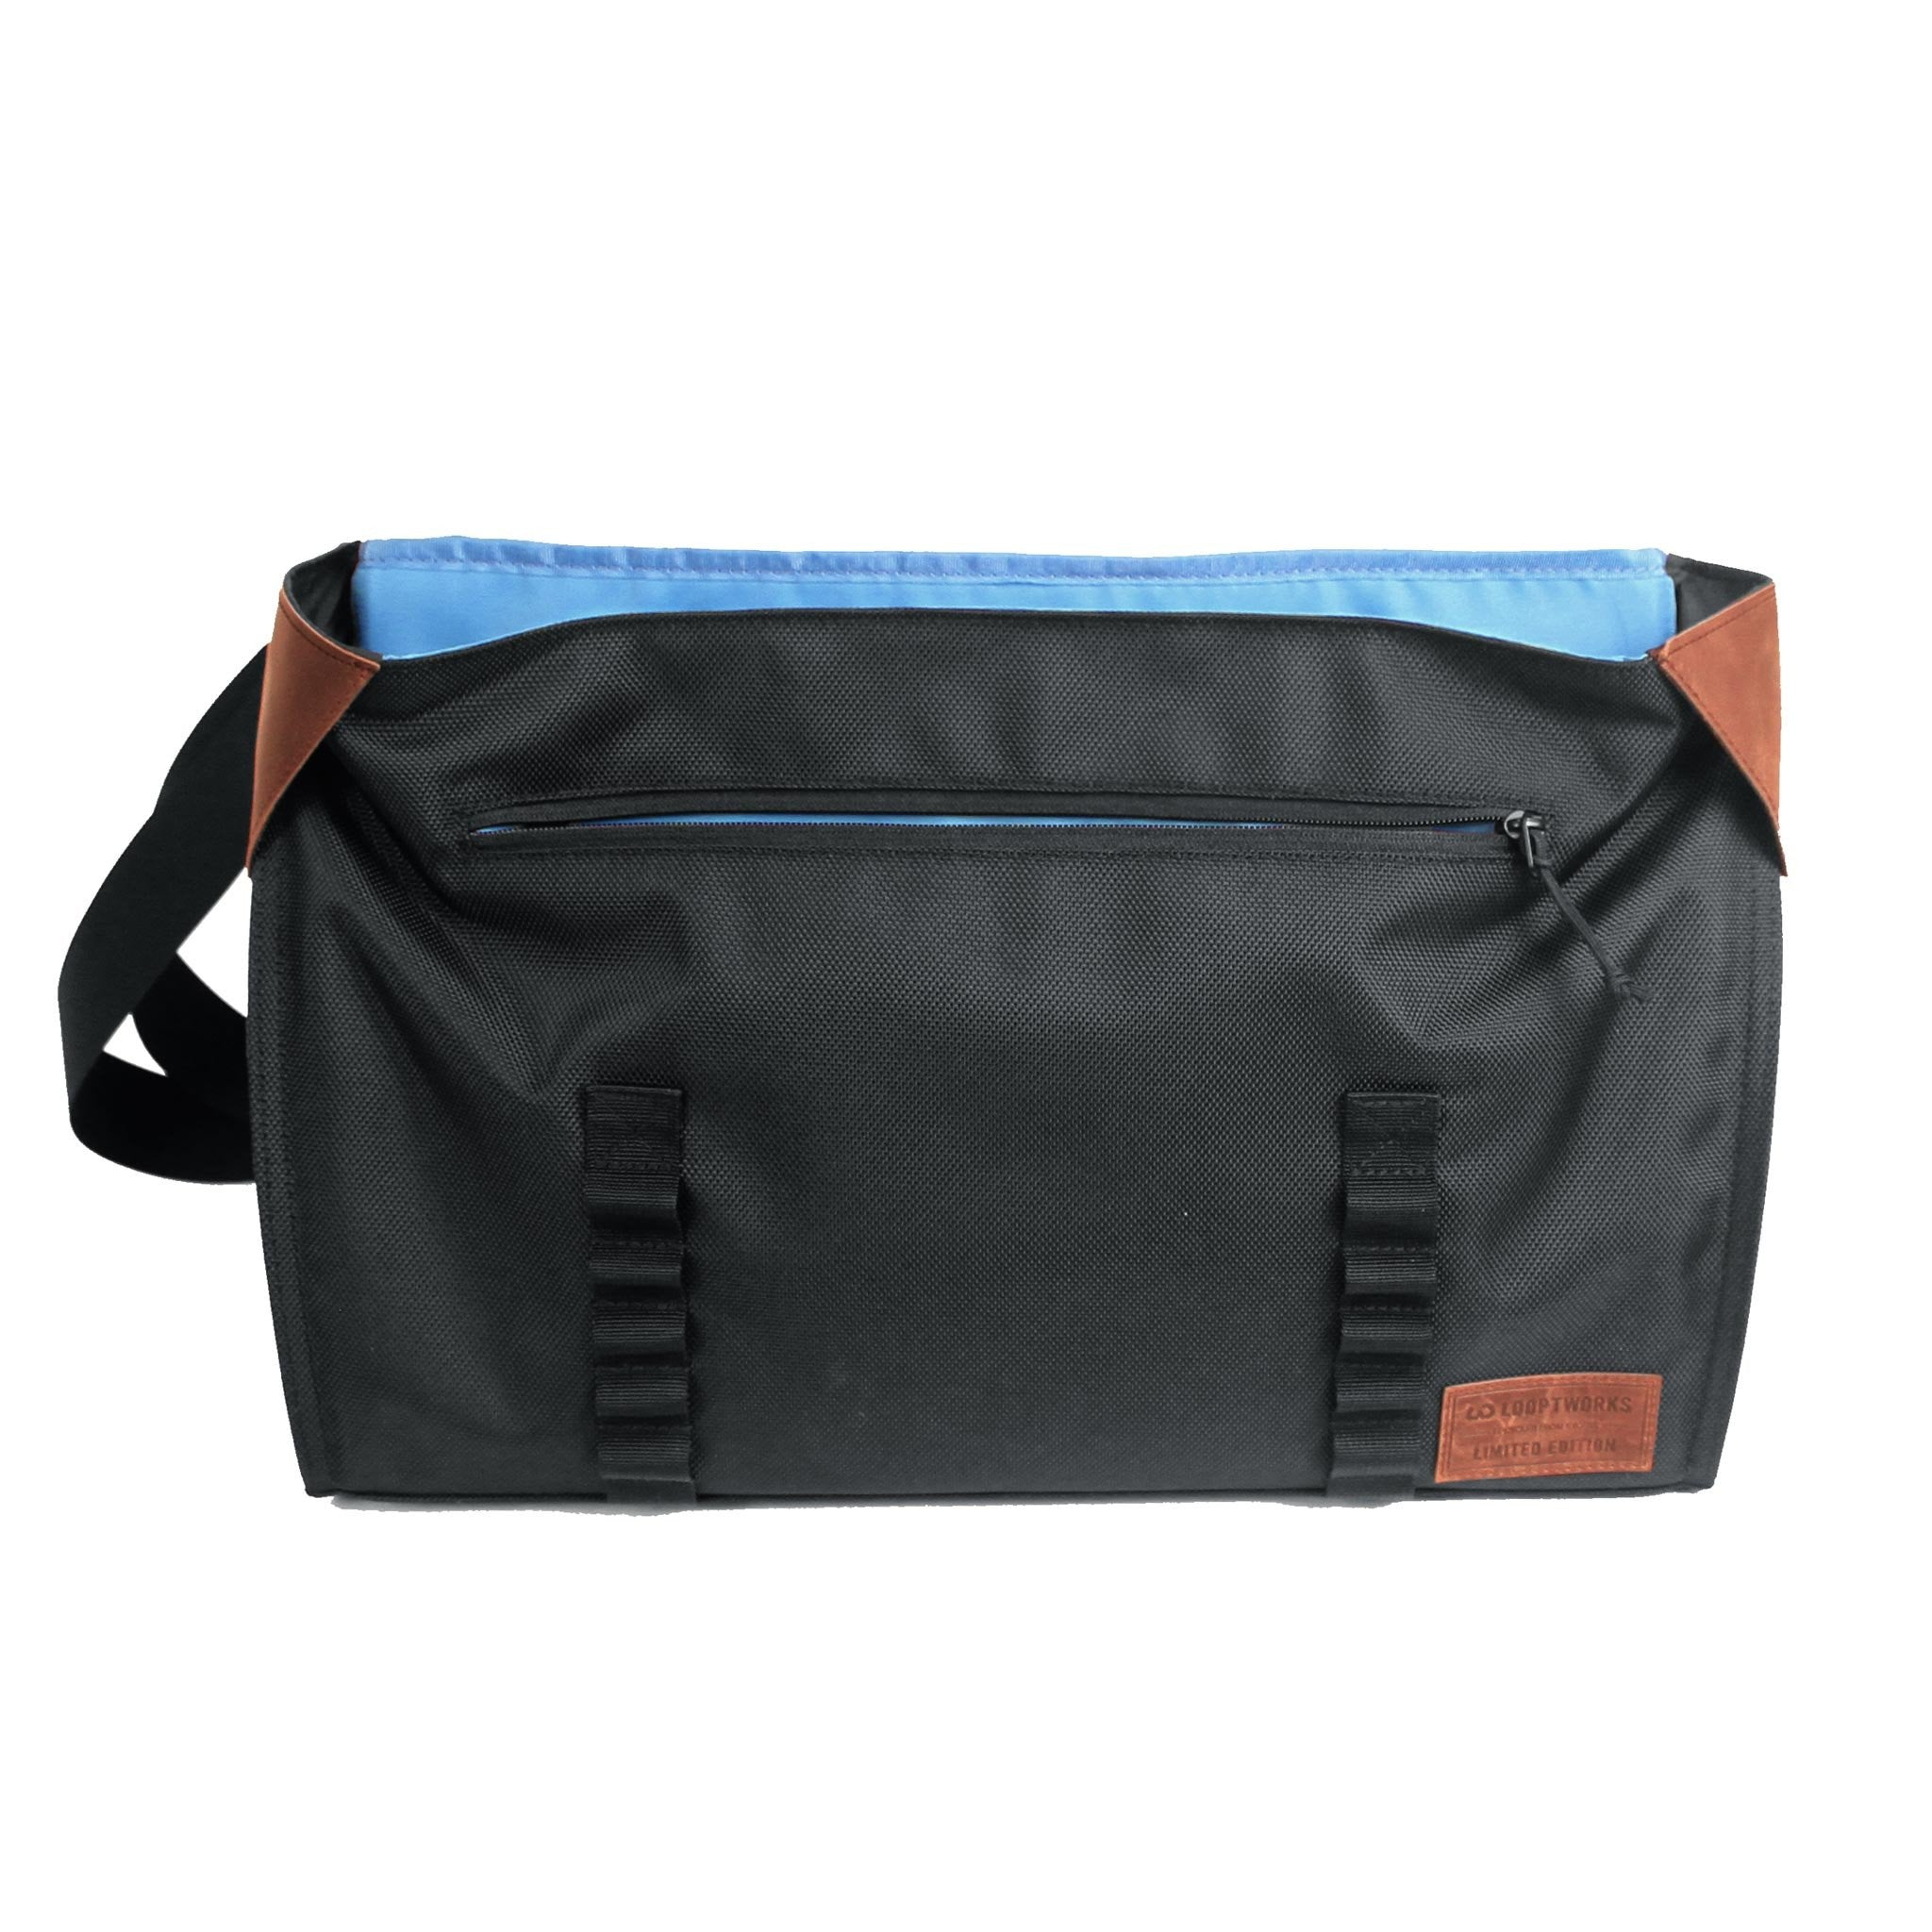 Northwest messenger bag open view